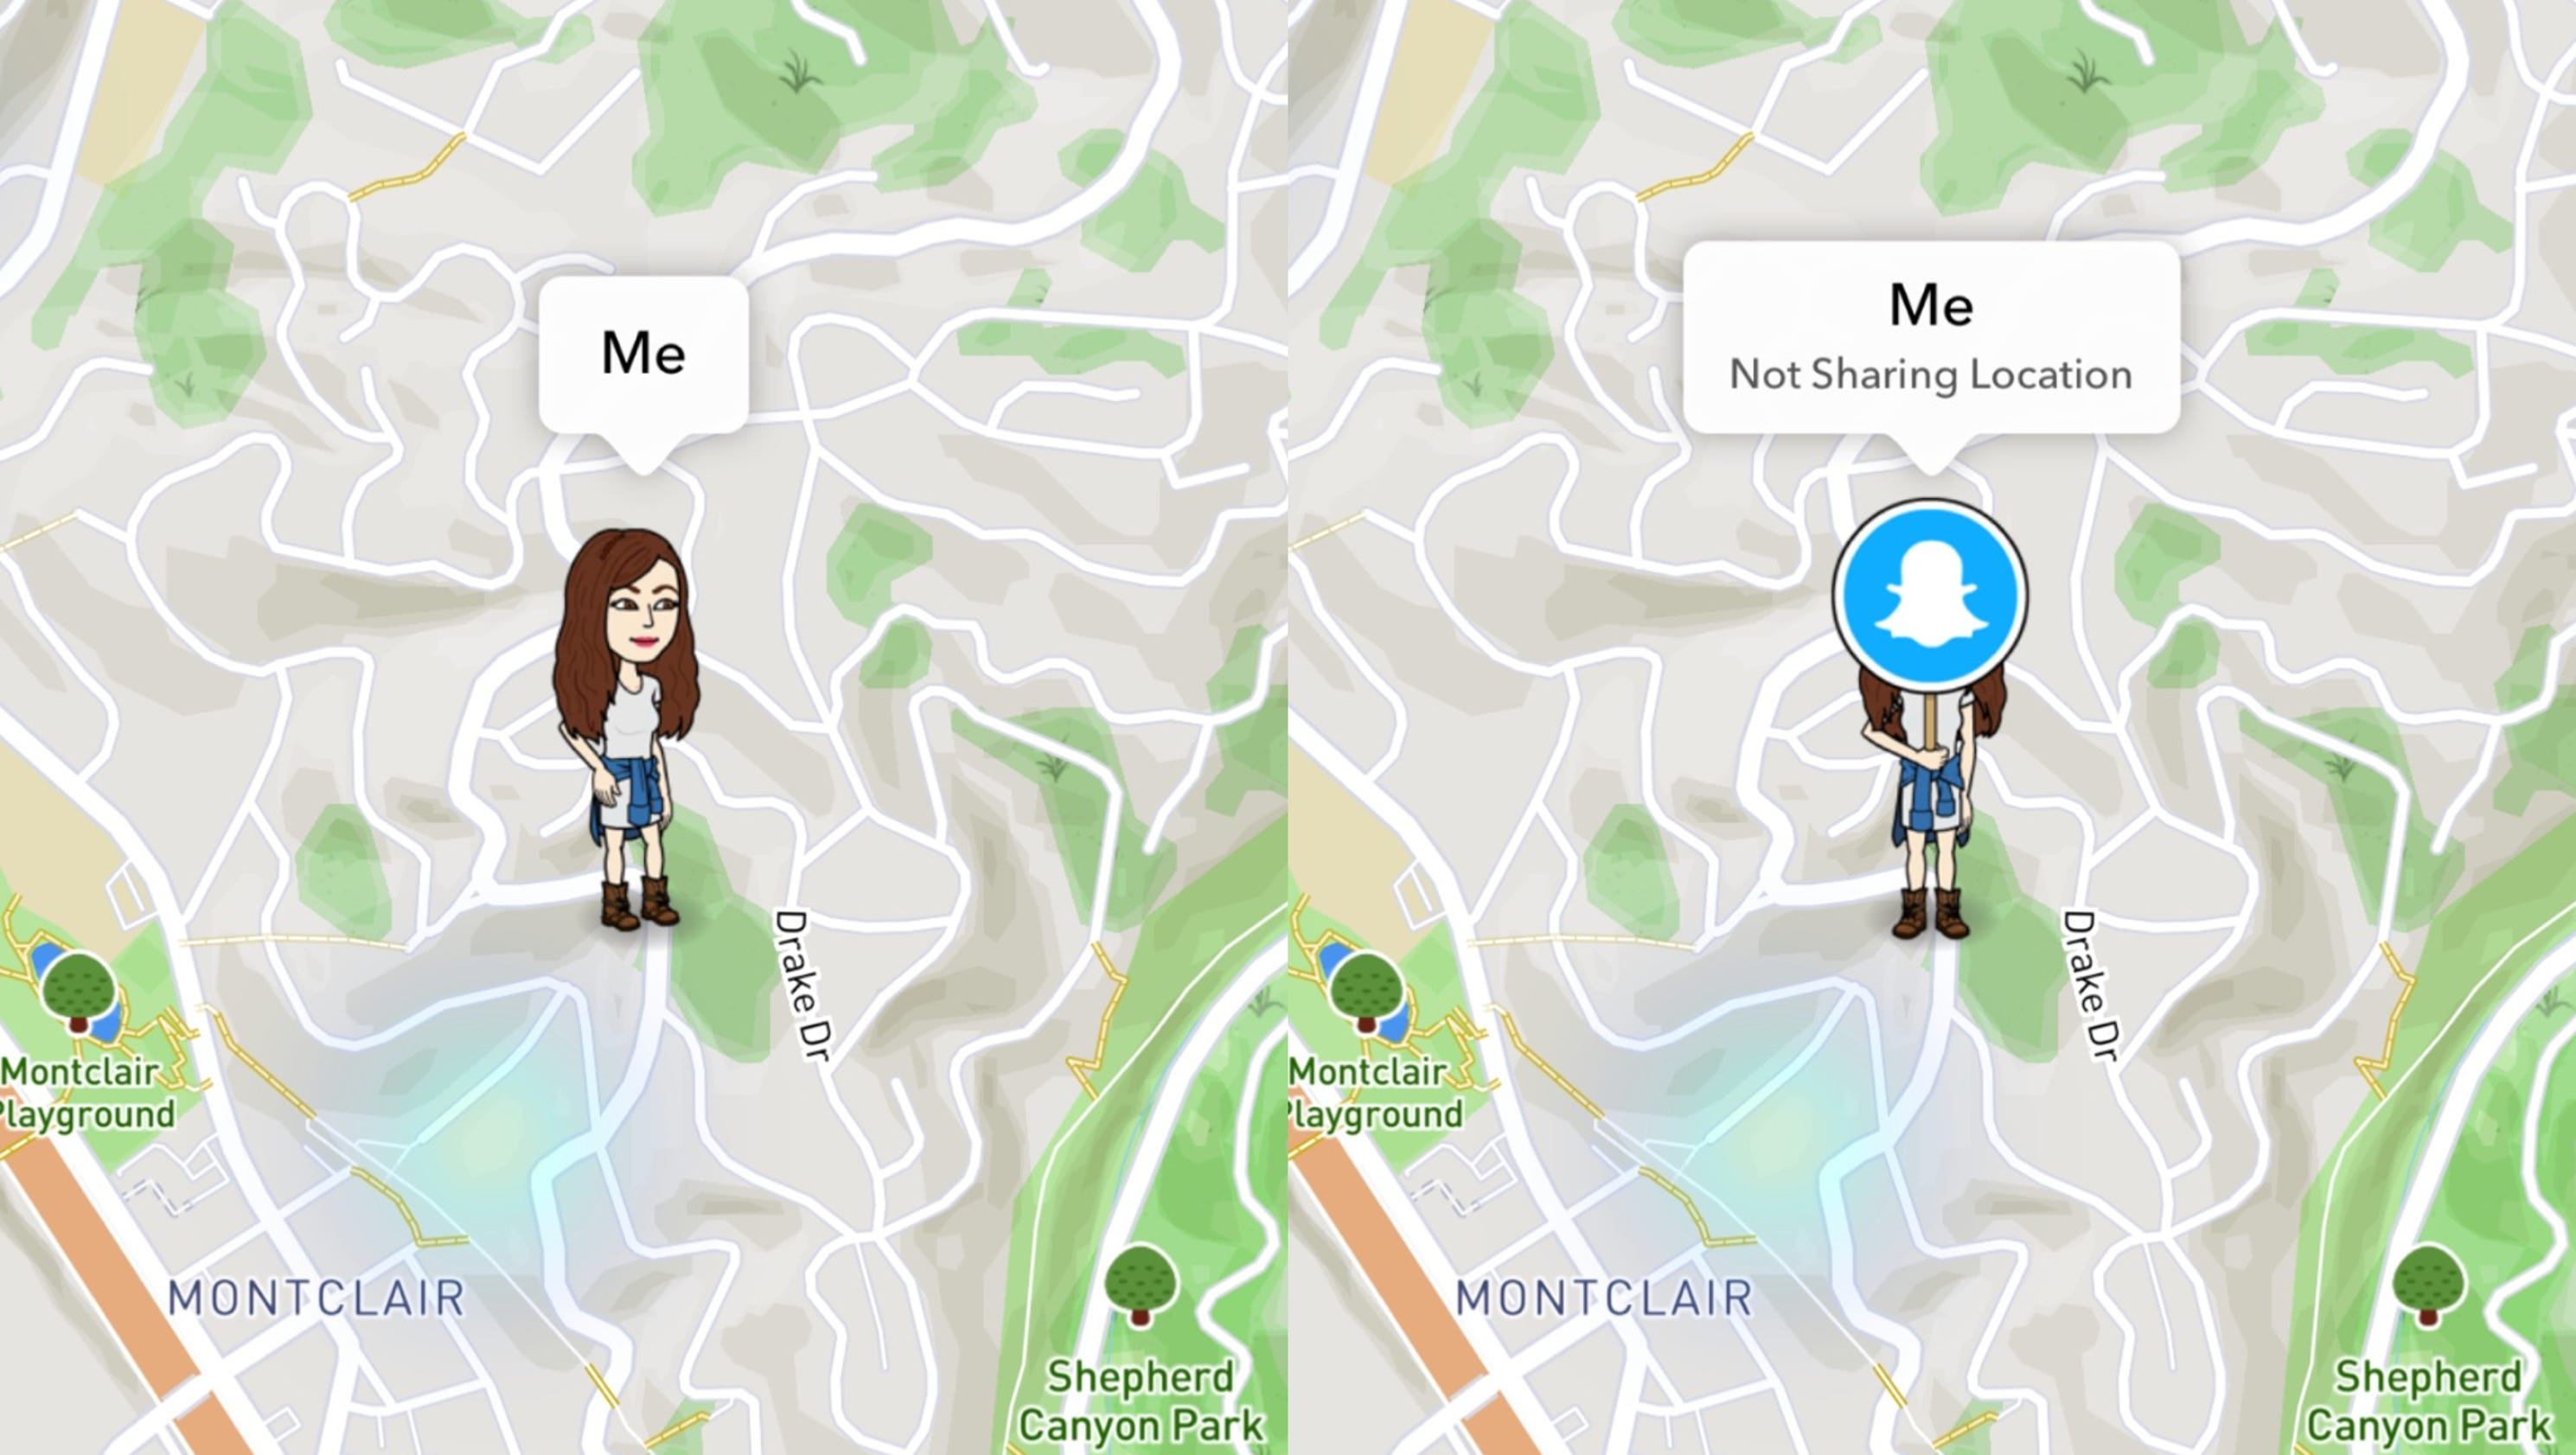 how to turn on ghost mode on snapchat